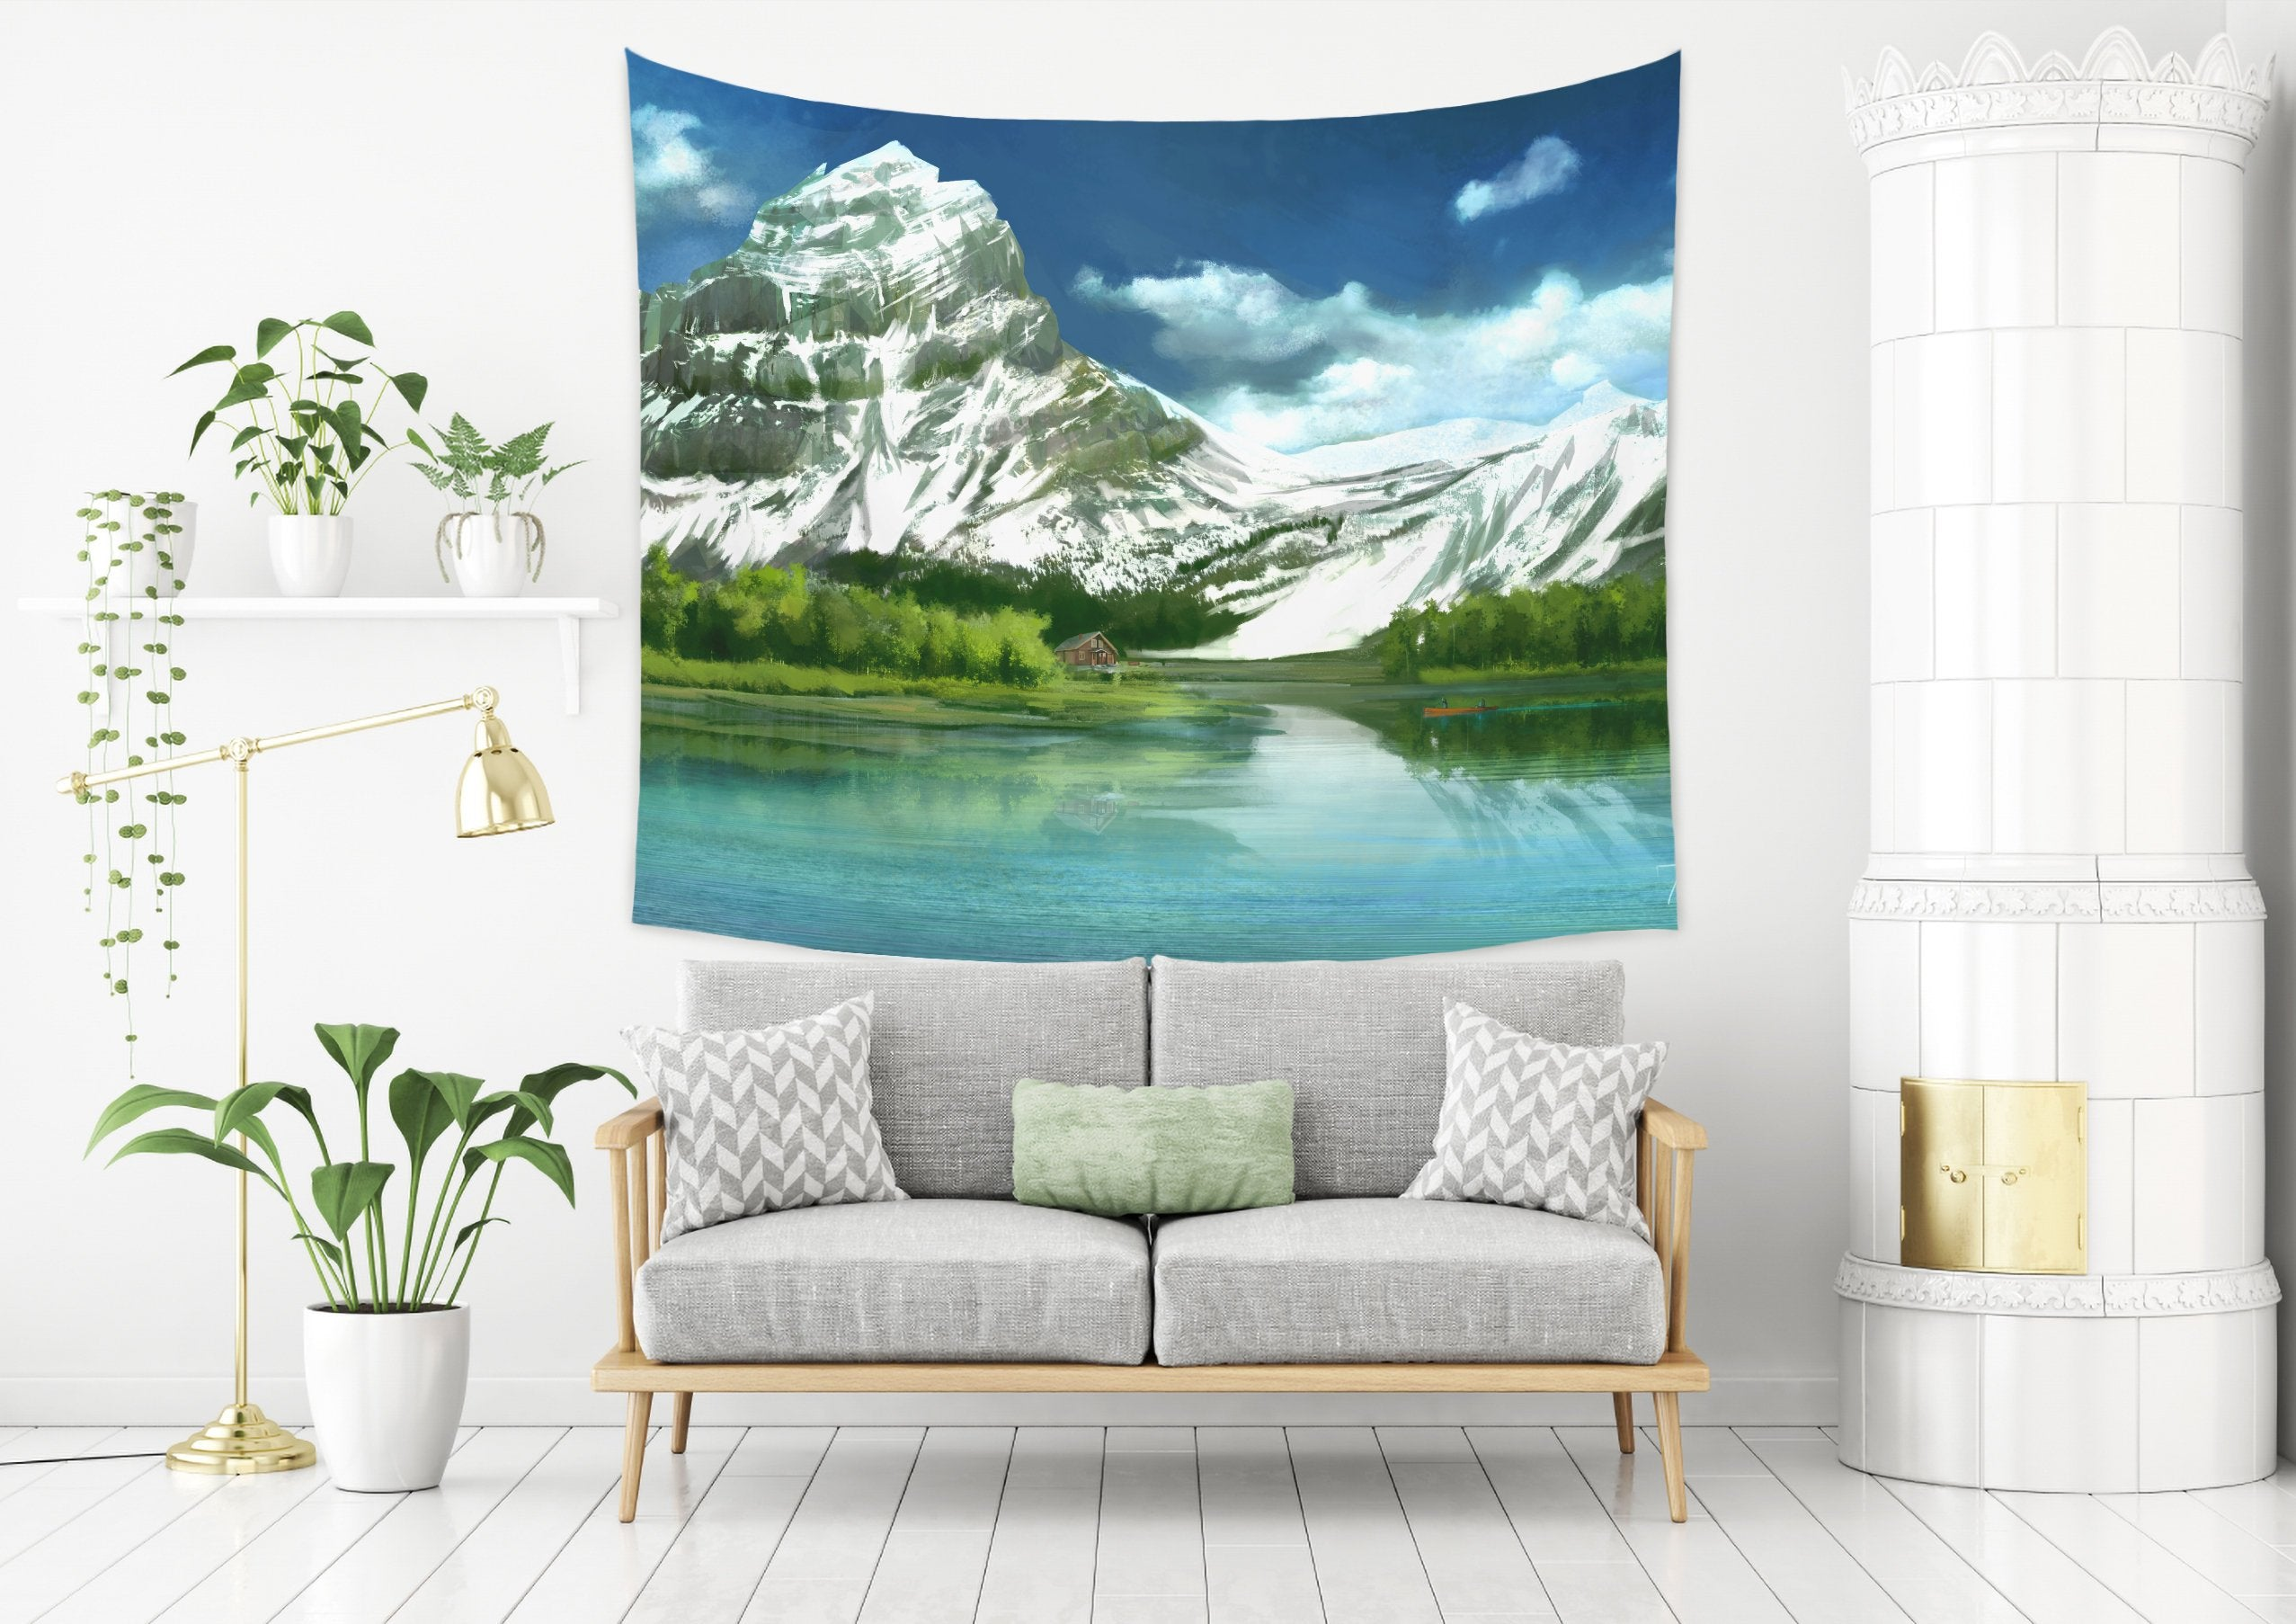 Mountain Landscape Tapestry For Living Room in Blue and Green | Brandless Artist